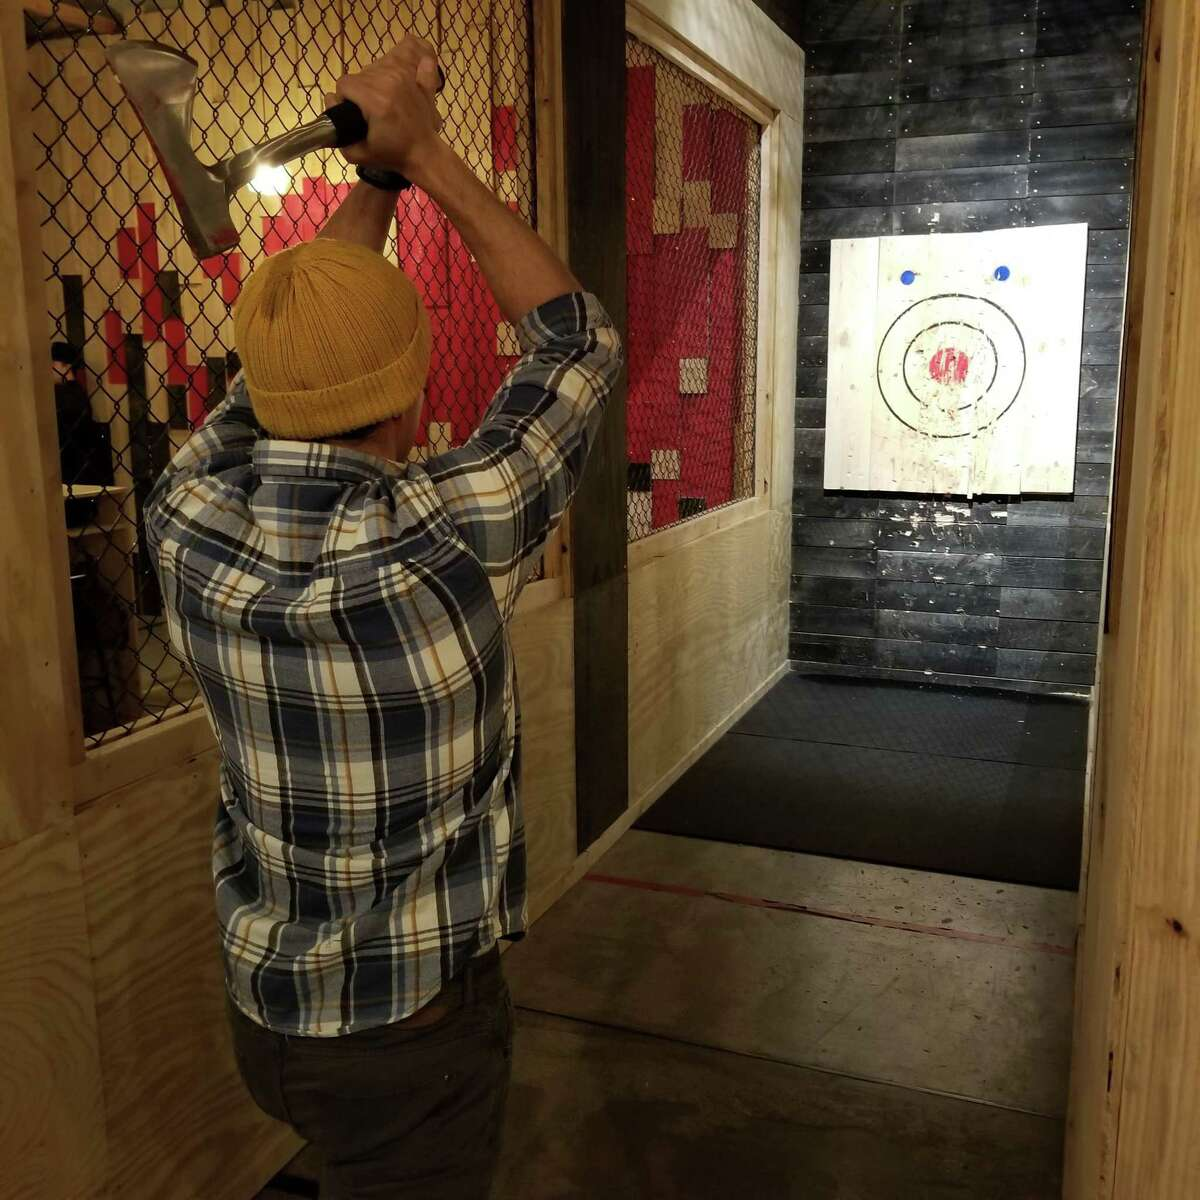 Pine & Iron in New Haven. Ax-throwing has become an increasingly popular pastime since the creation of the International Ax Throwing Federation in 2016.